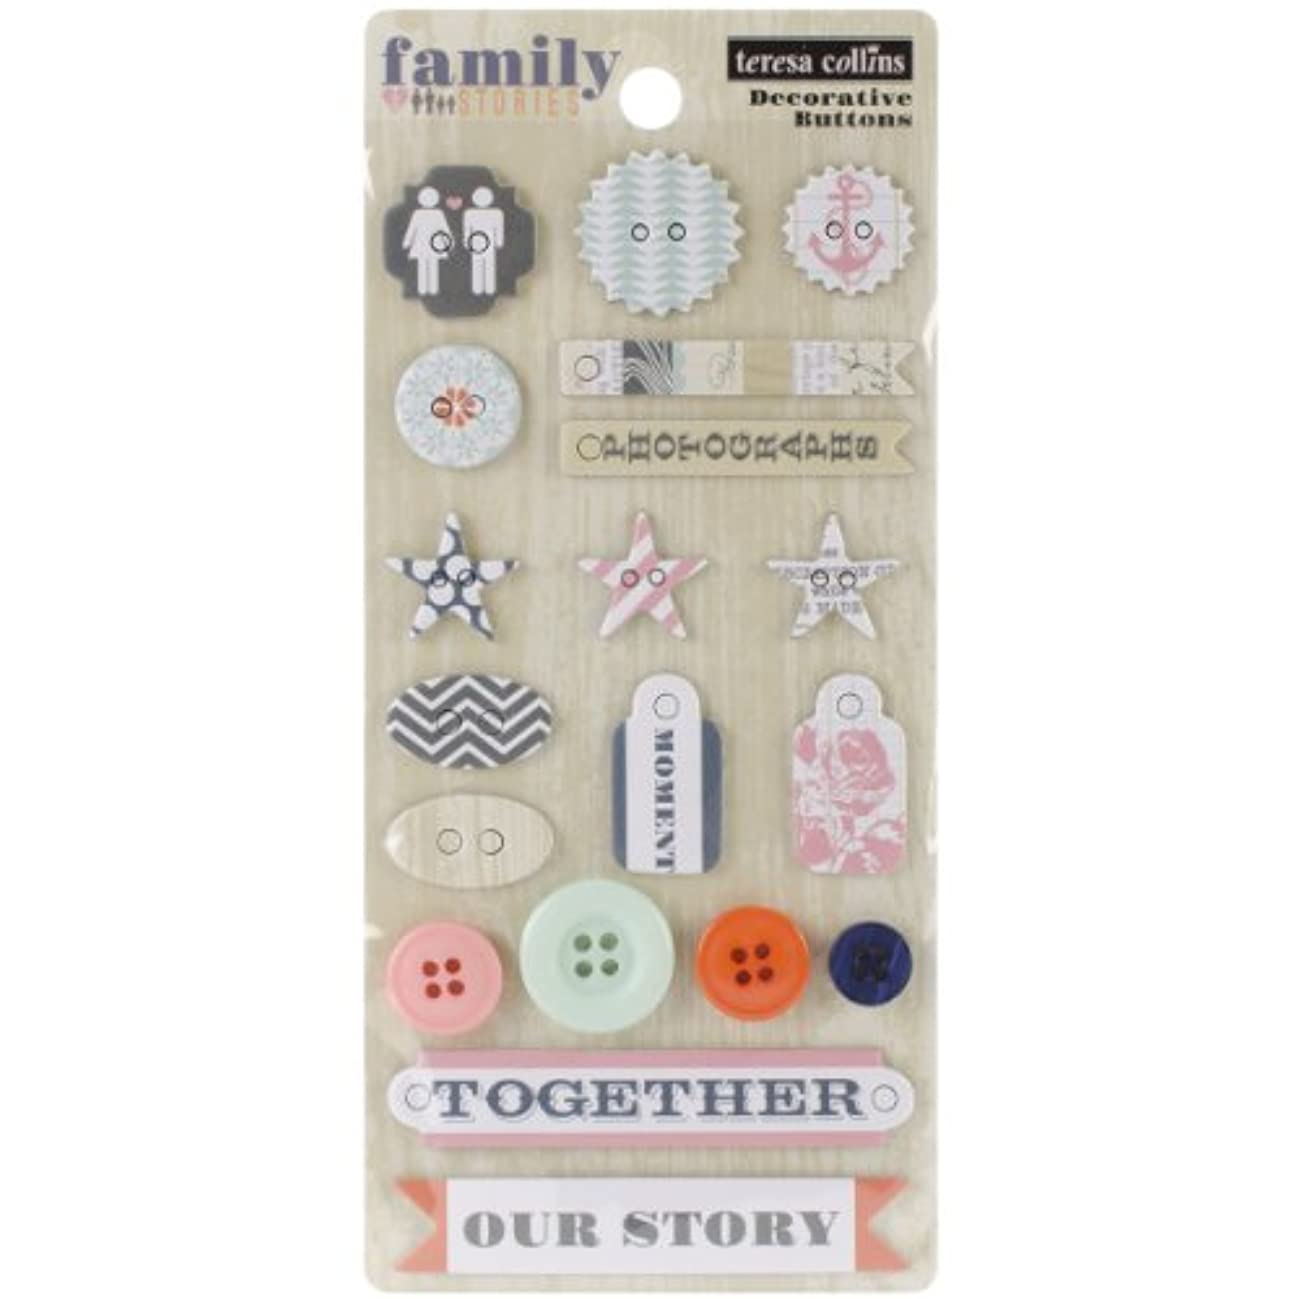 Teresa Collins Family Stories Decorative Buttons & Chipboard